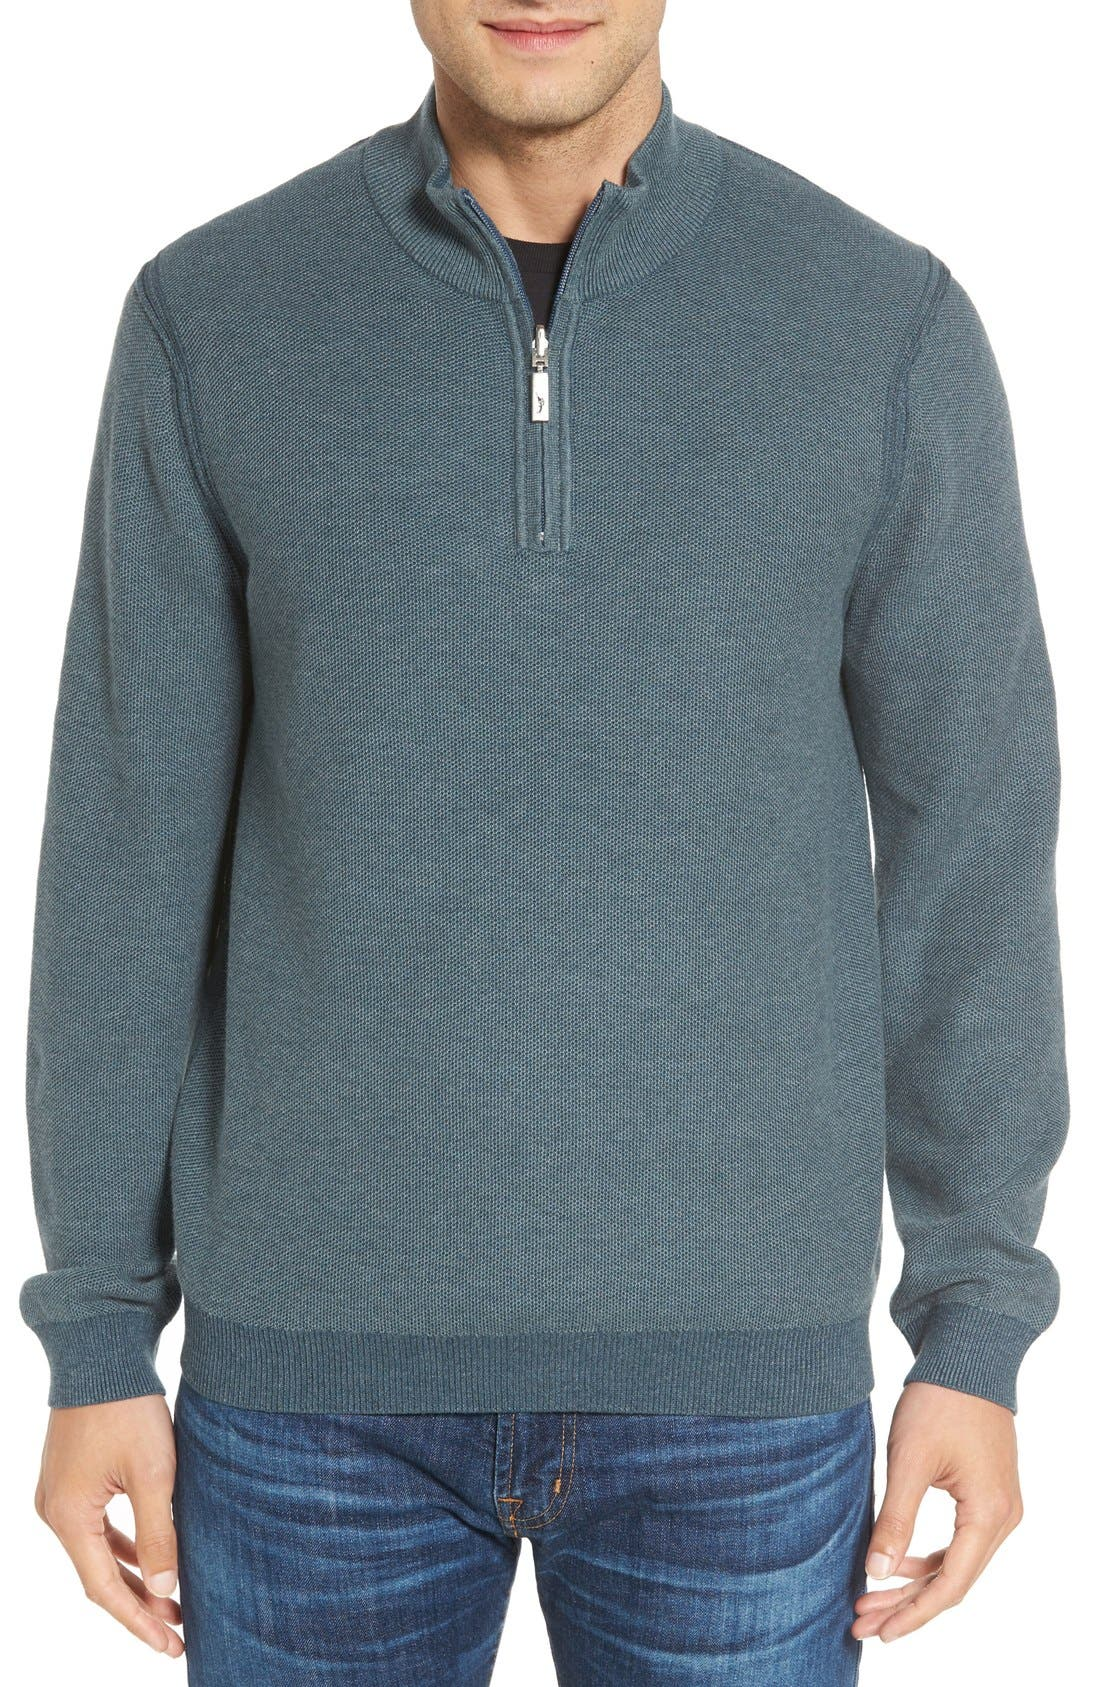 Main Image - Tommy Bahama Make Mine a Double Reversible Quarter Zip Sweater